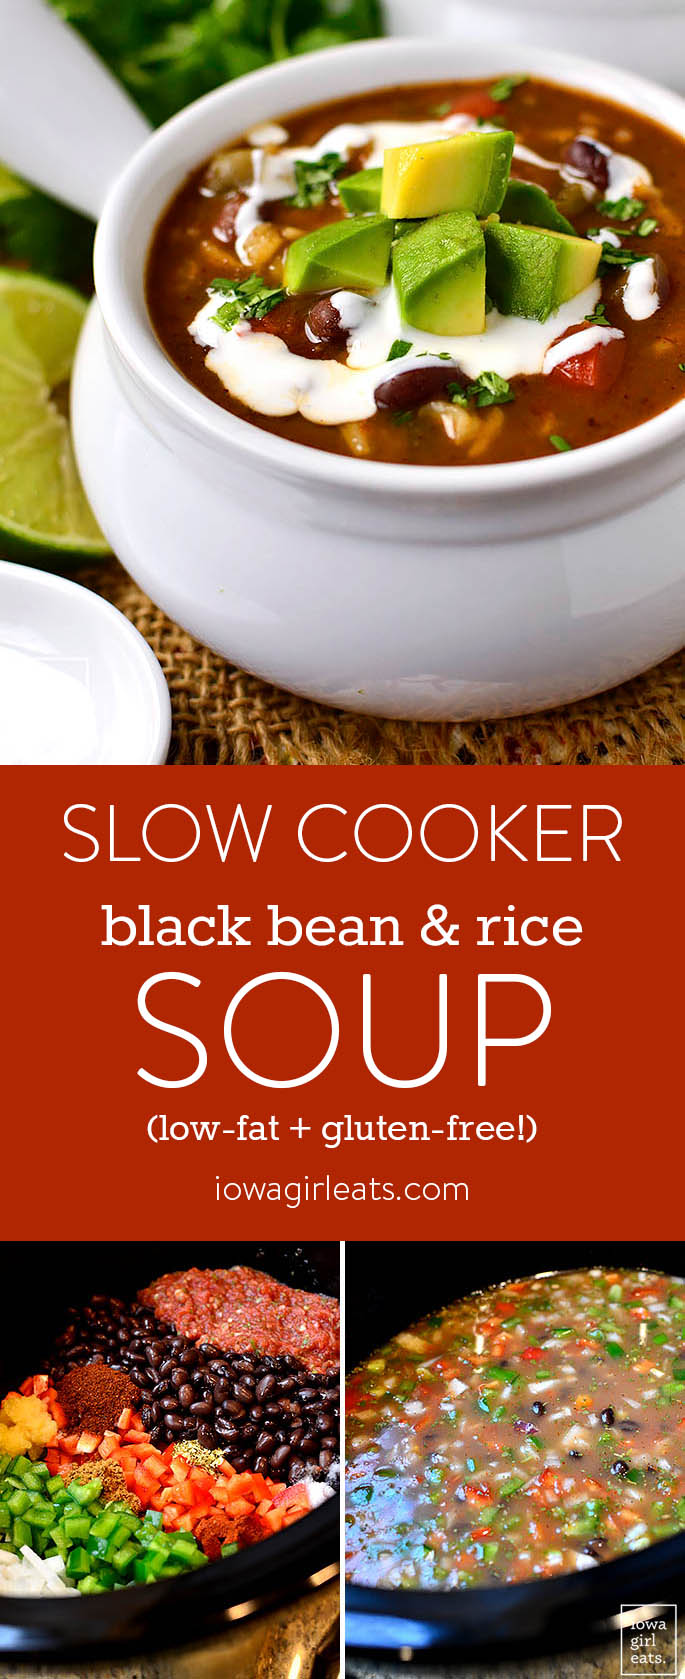 Slow Cooker Black Bean and Rice Soup is a filling, healthy, and heartygluten-free slow cooker recipe that's easy on the wallet, and waistline!   iowagirleats.com